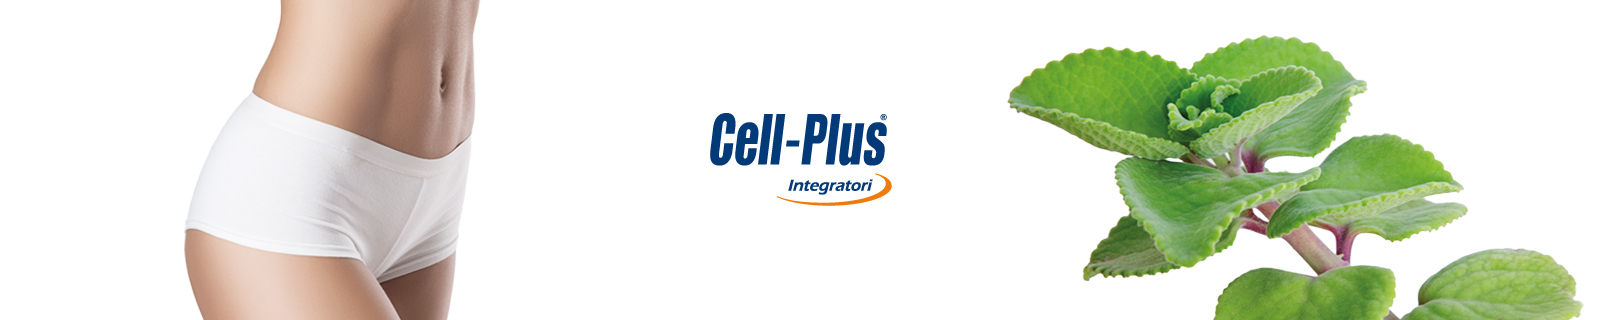 Cell-Plus Integratori